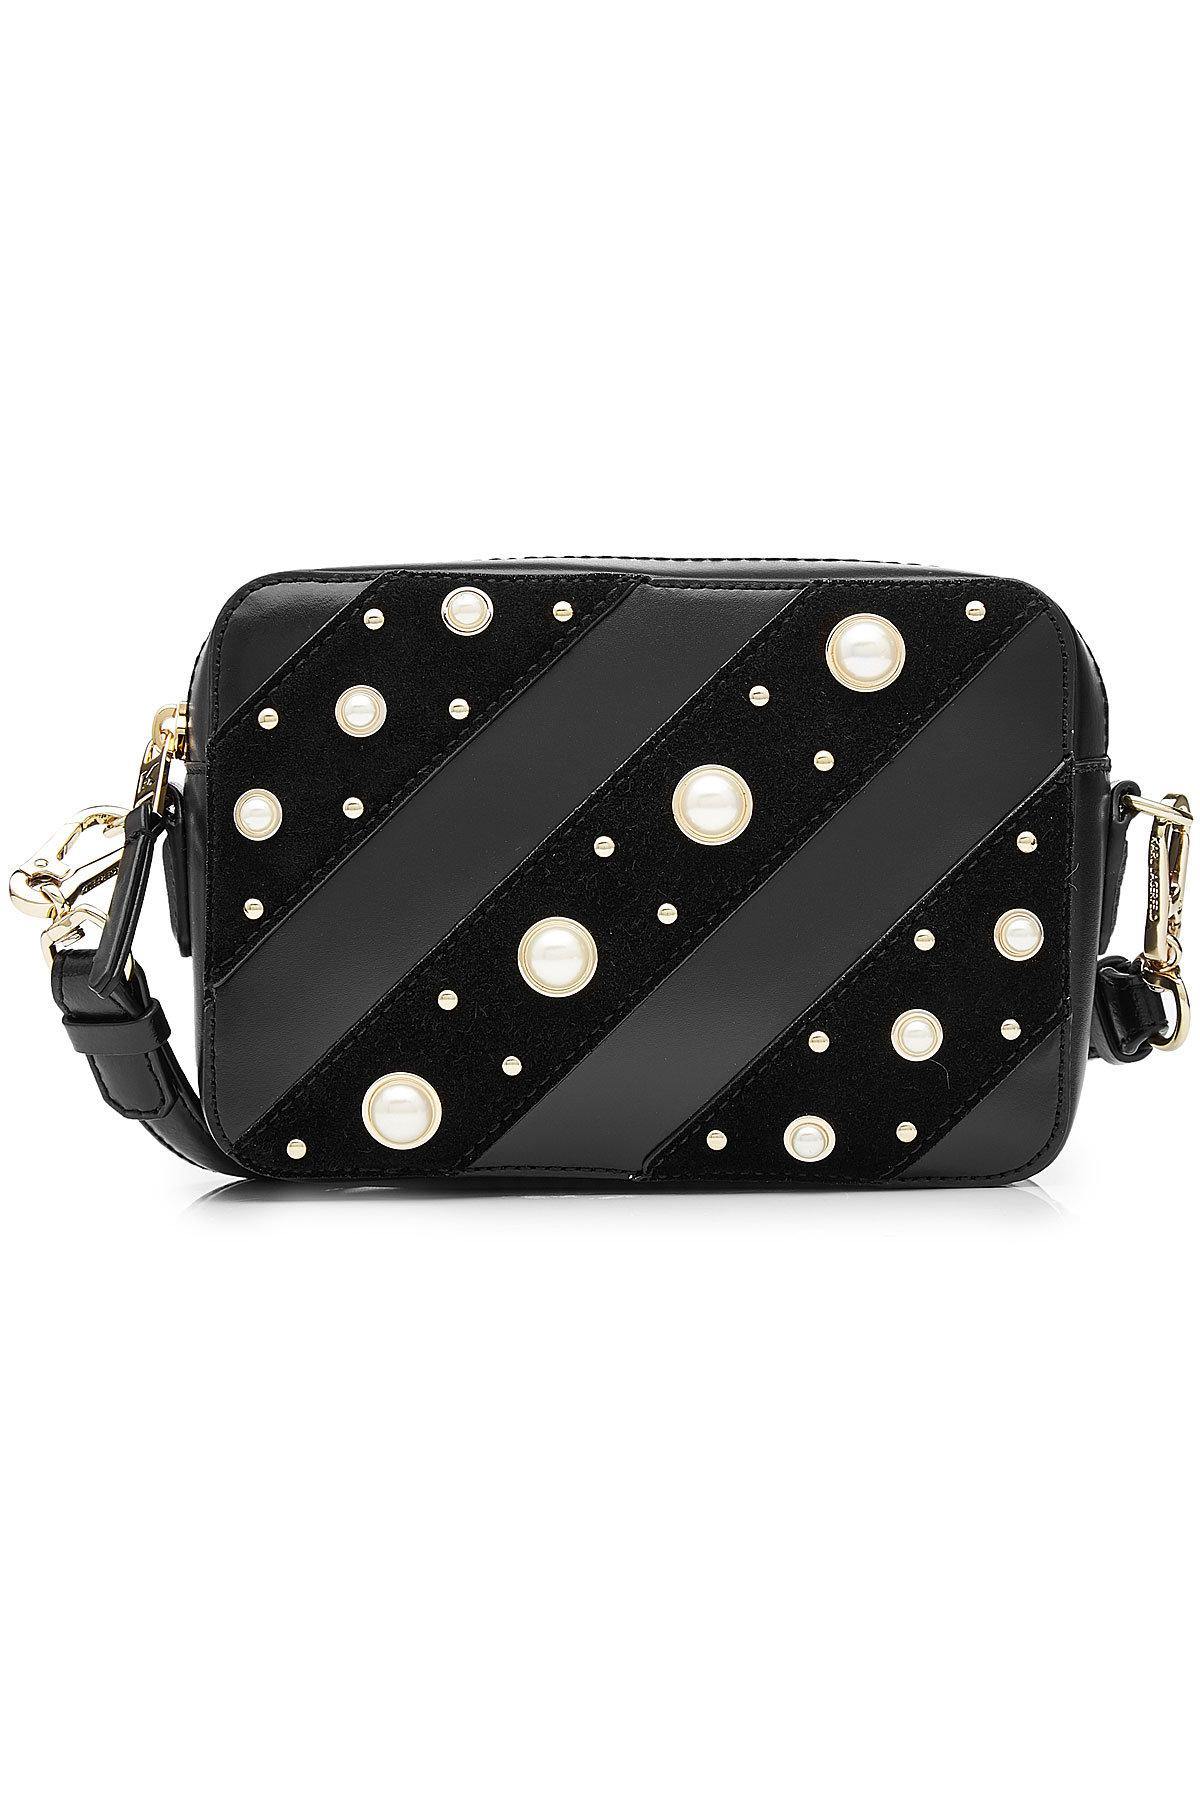 a3b7b107ae4 Lyst - Karl Lagerfeld Leather Shoulder Bag With Faux Pearl ...